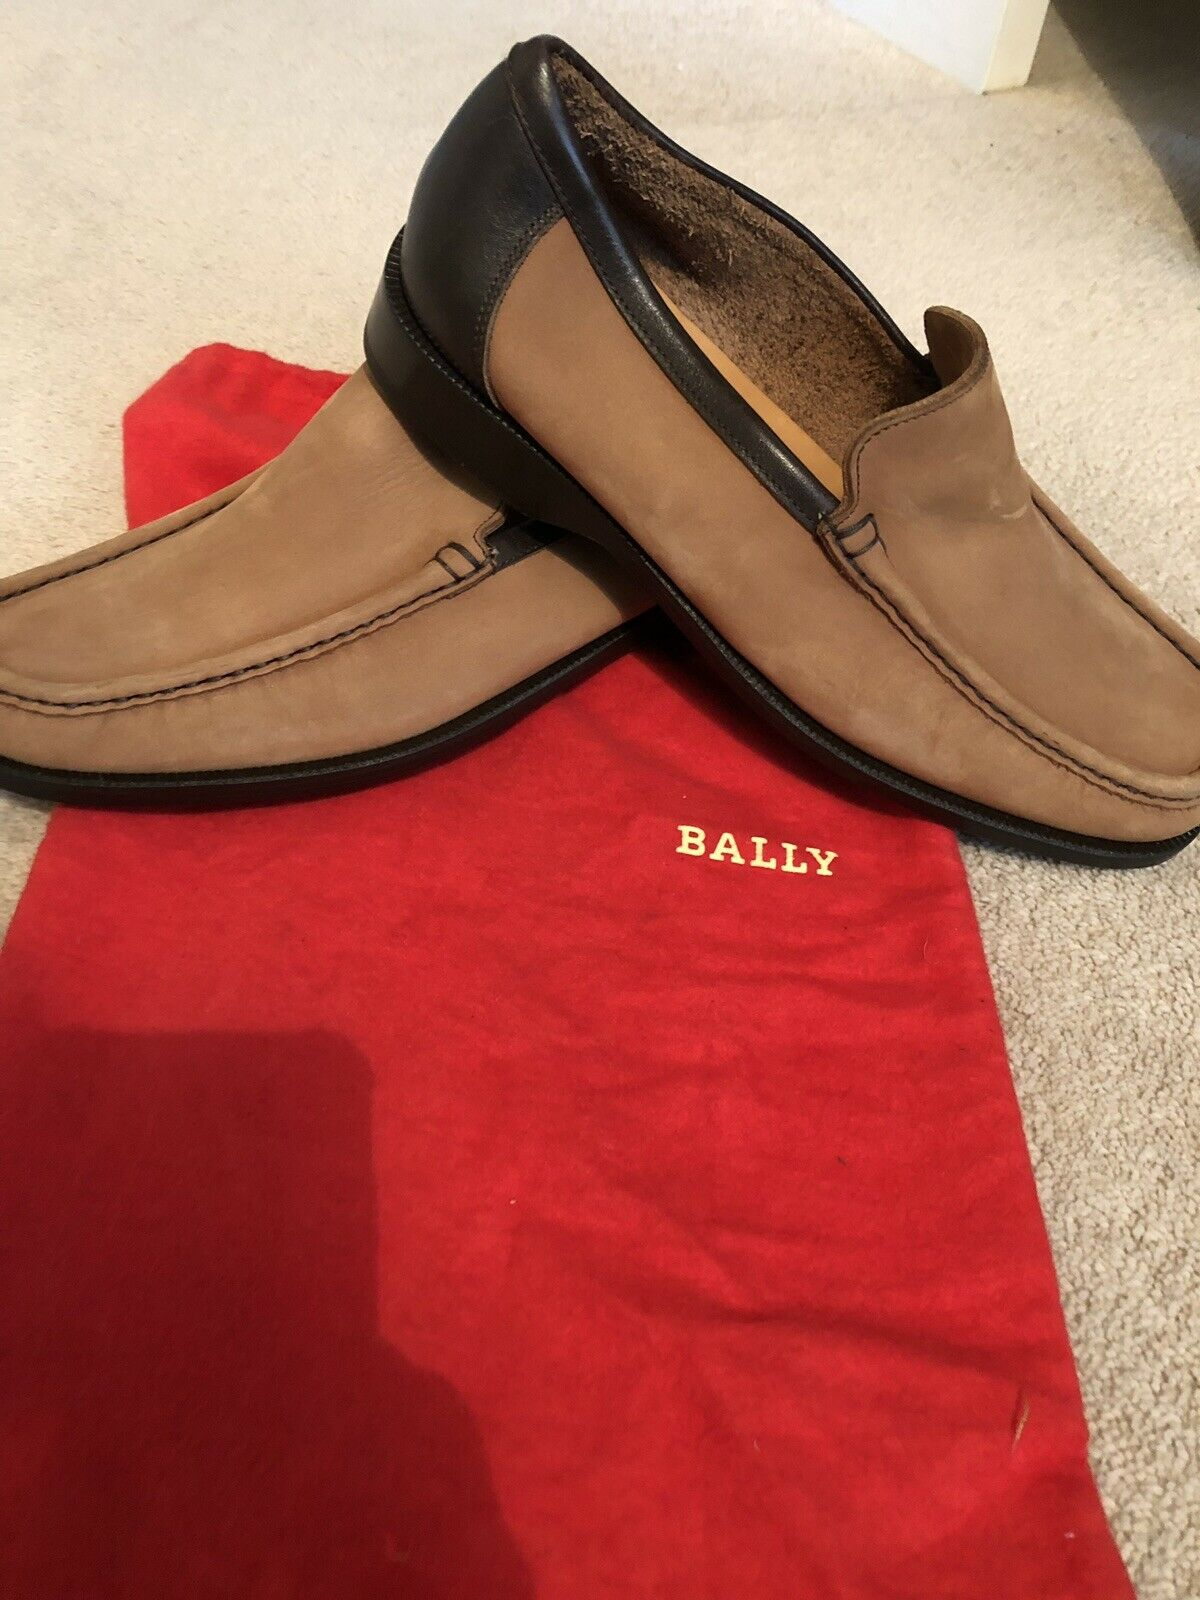 Bally Moccasin shoes In Brown - Size 7 (new)